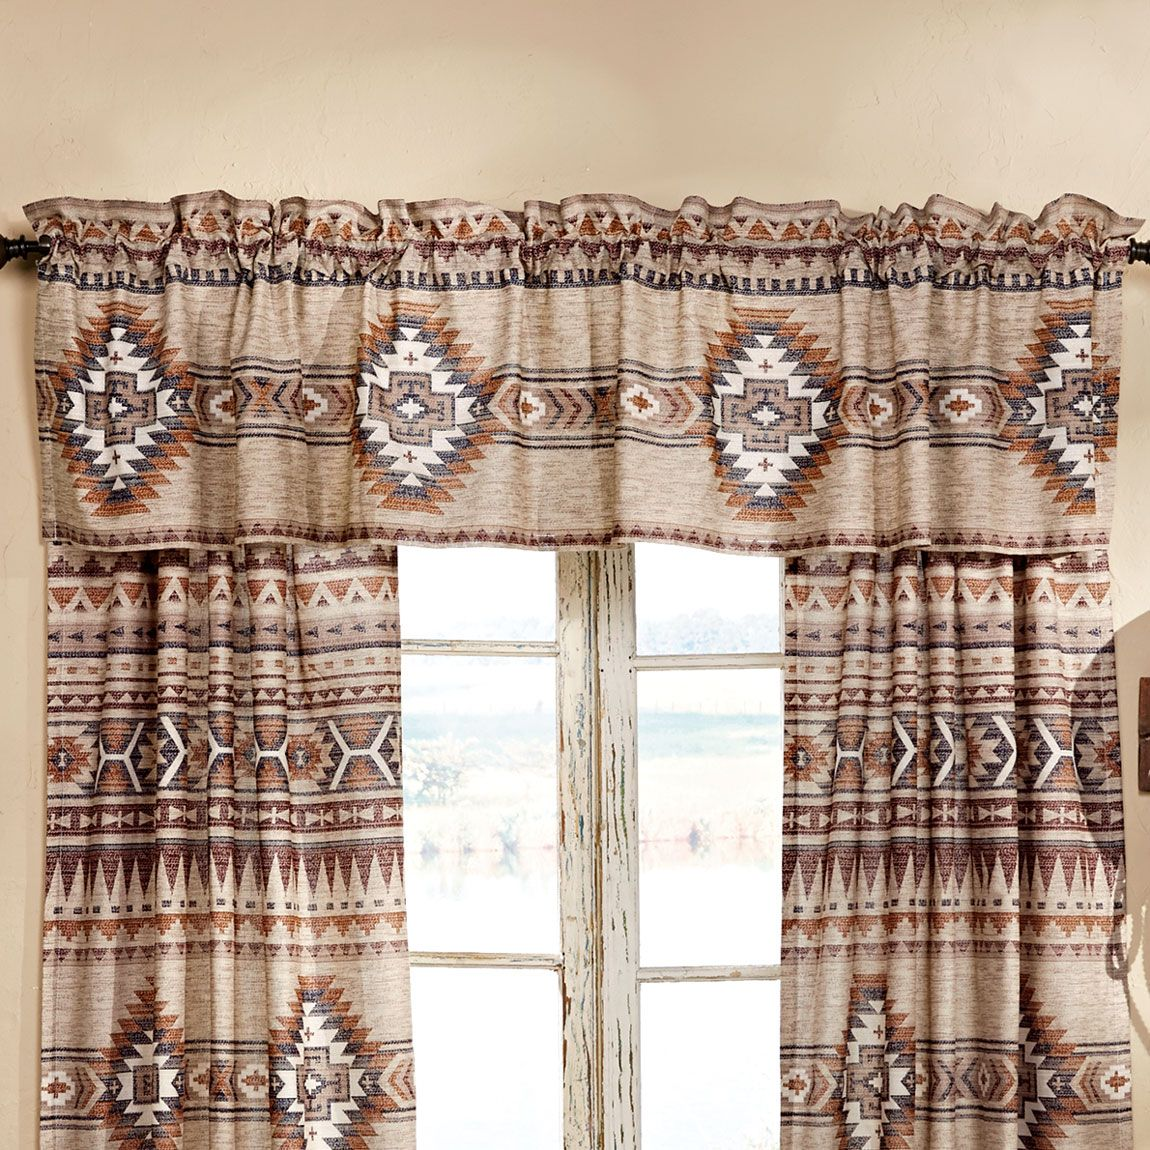 Southern Flare Lined Valance